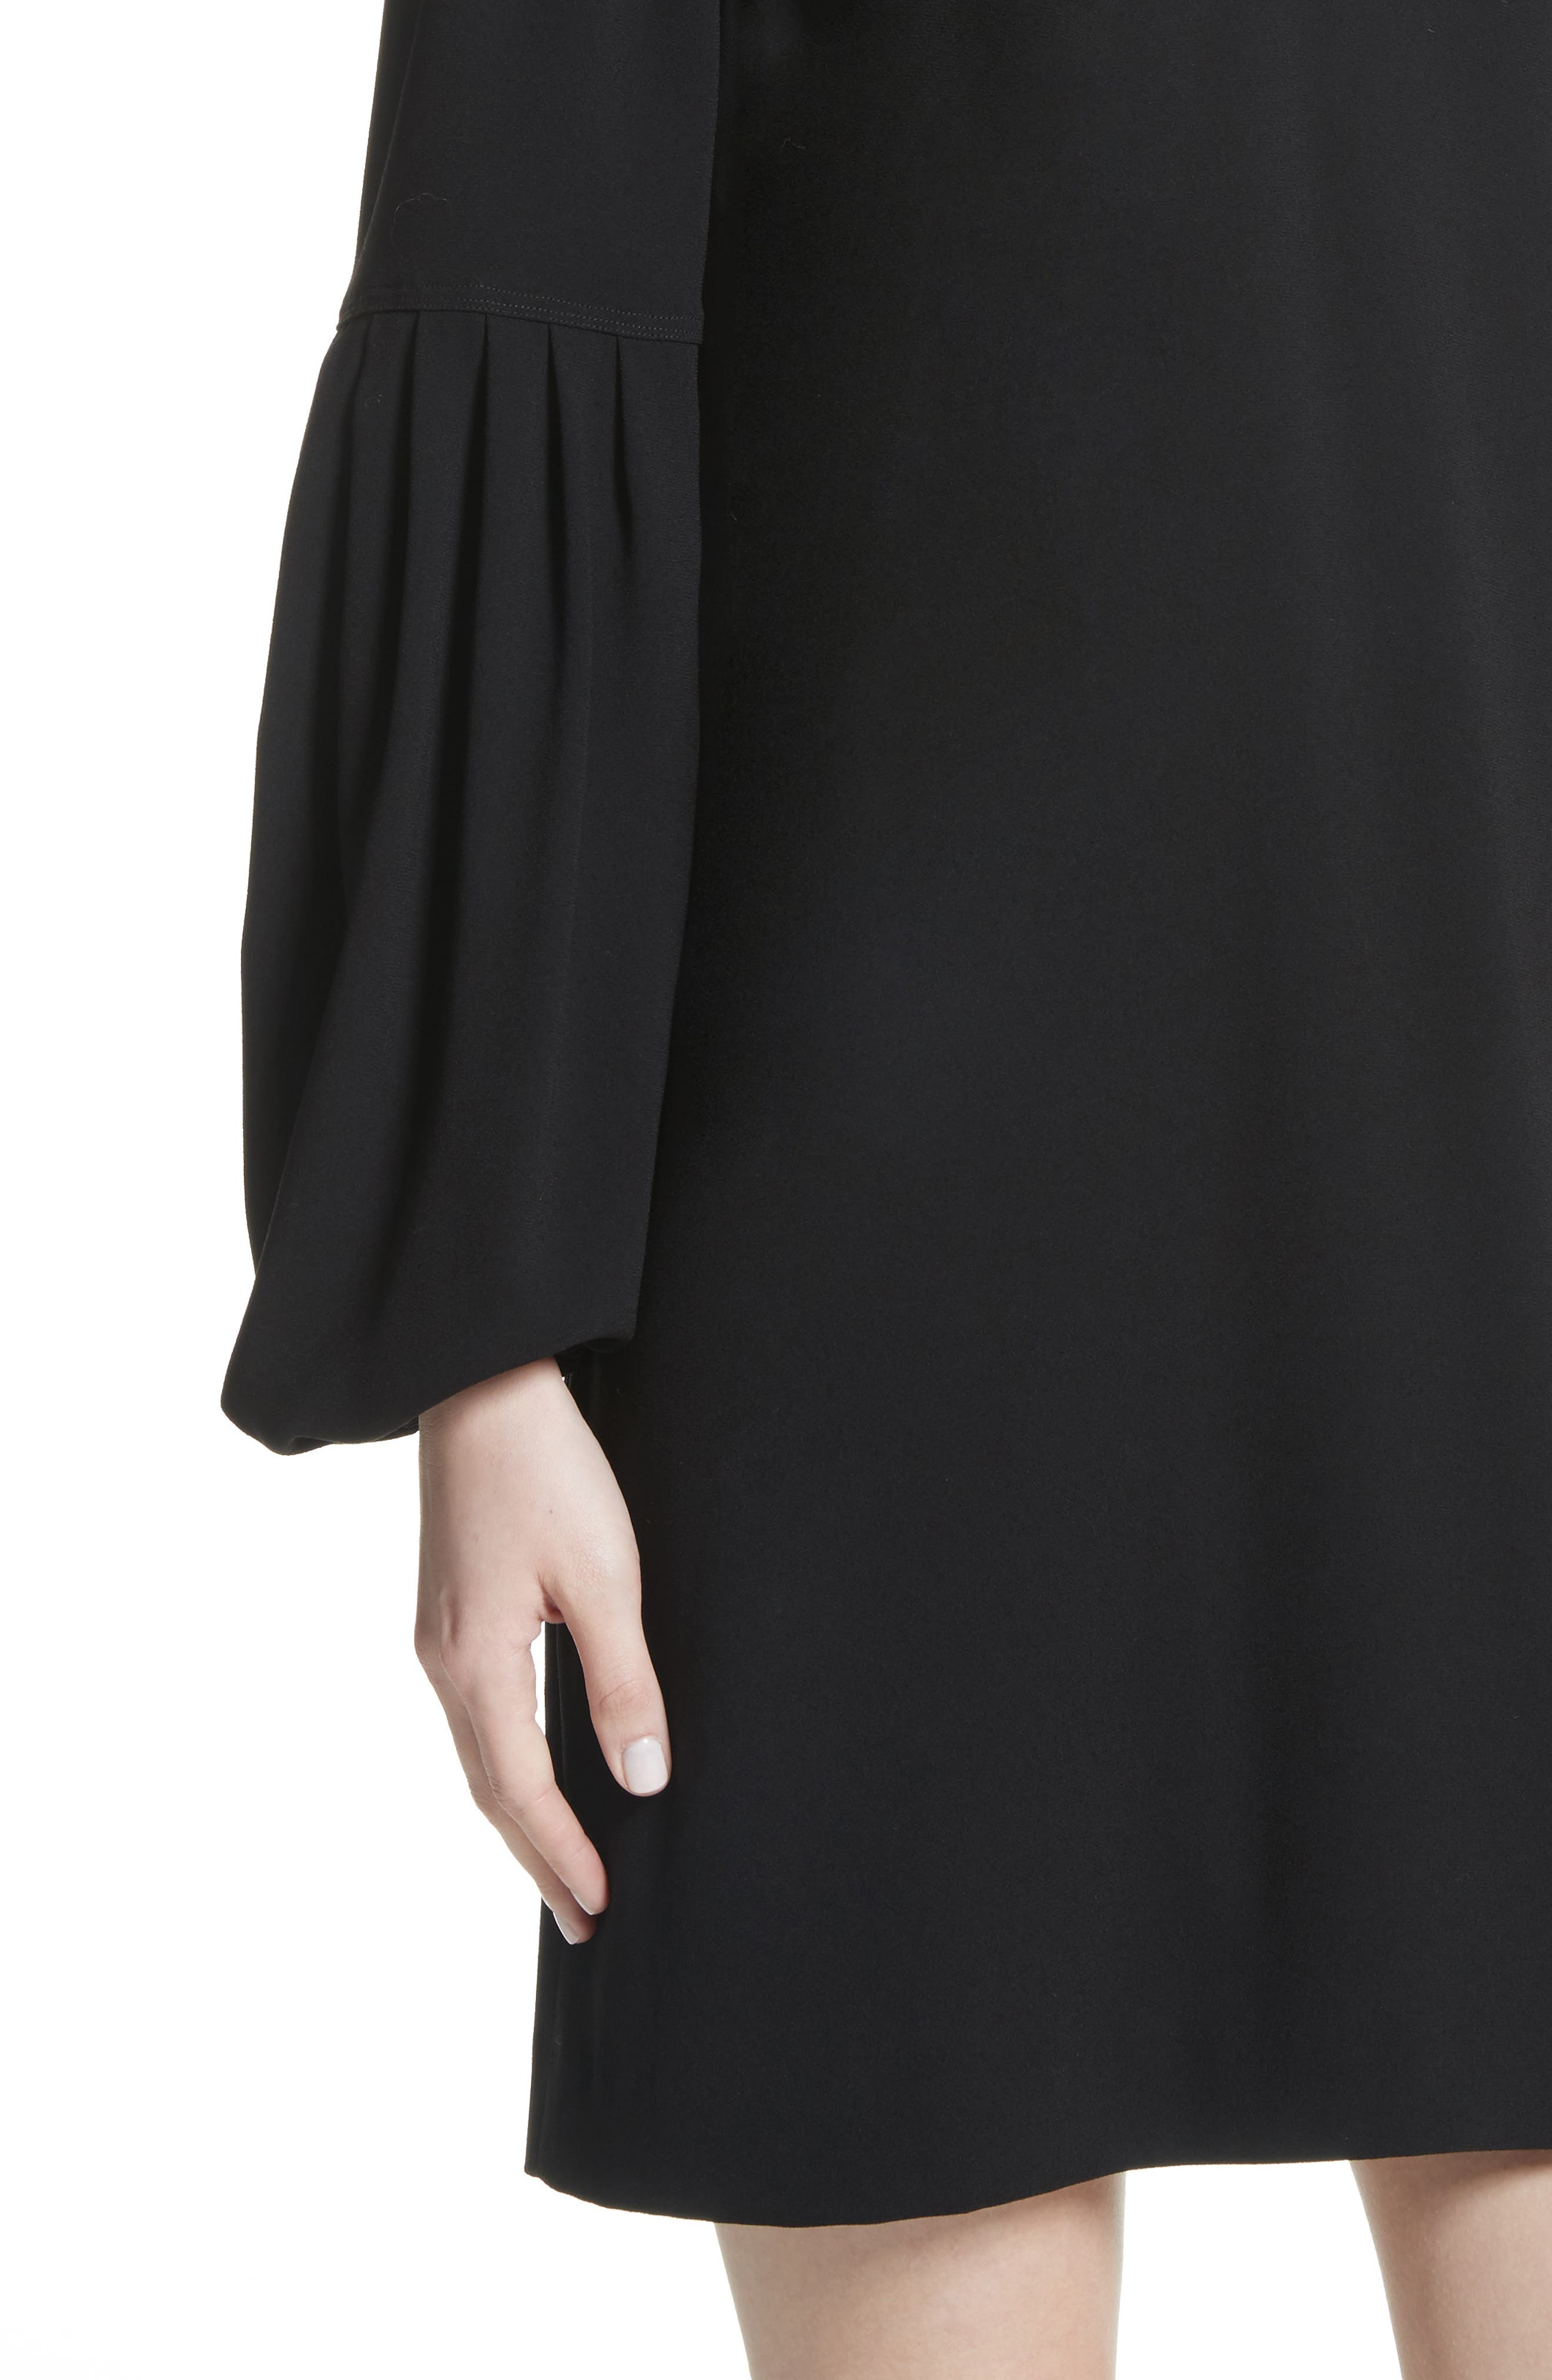 Claudia Puff Sleeve Dress,                             Alternate thumbnail 4, color,                             Black